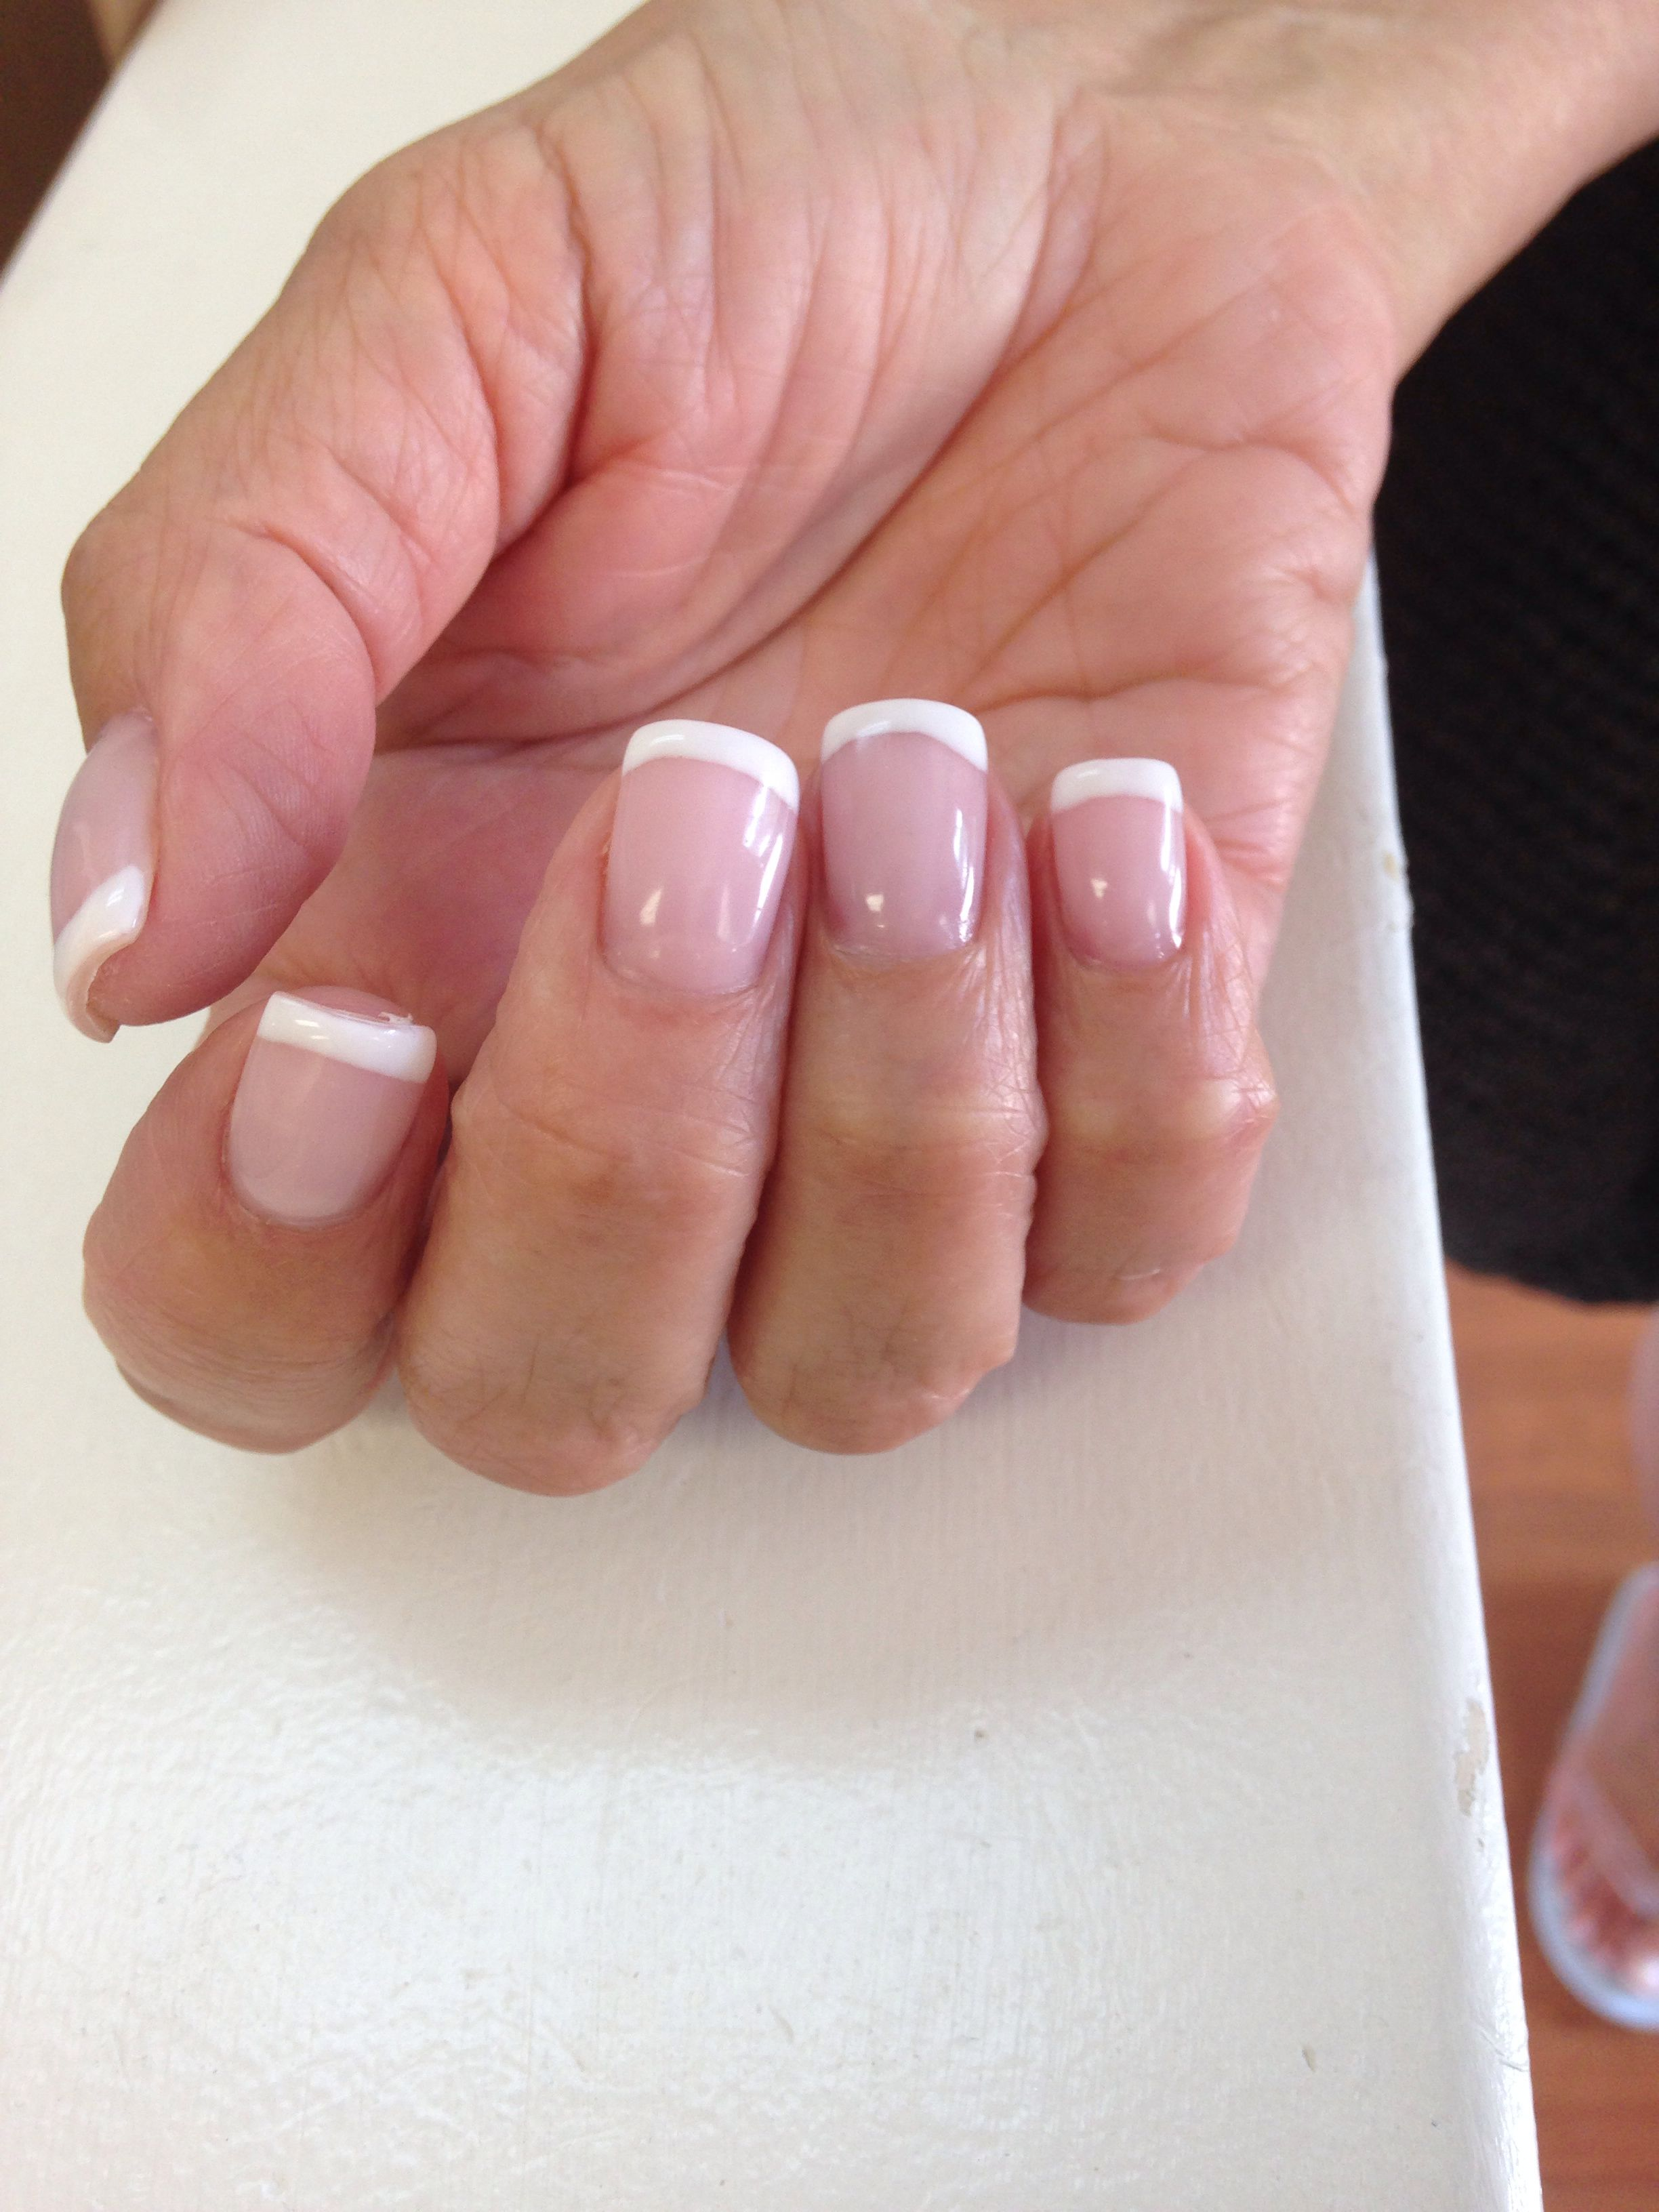 Hard Gel Full Set With French Mani These Nails Were Done By Me Full Set Gel Nails Gel Nails French Nails